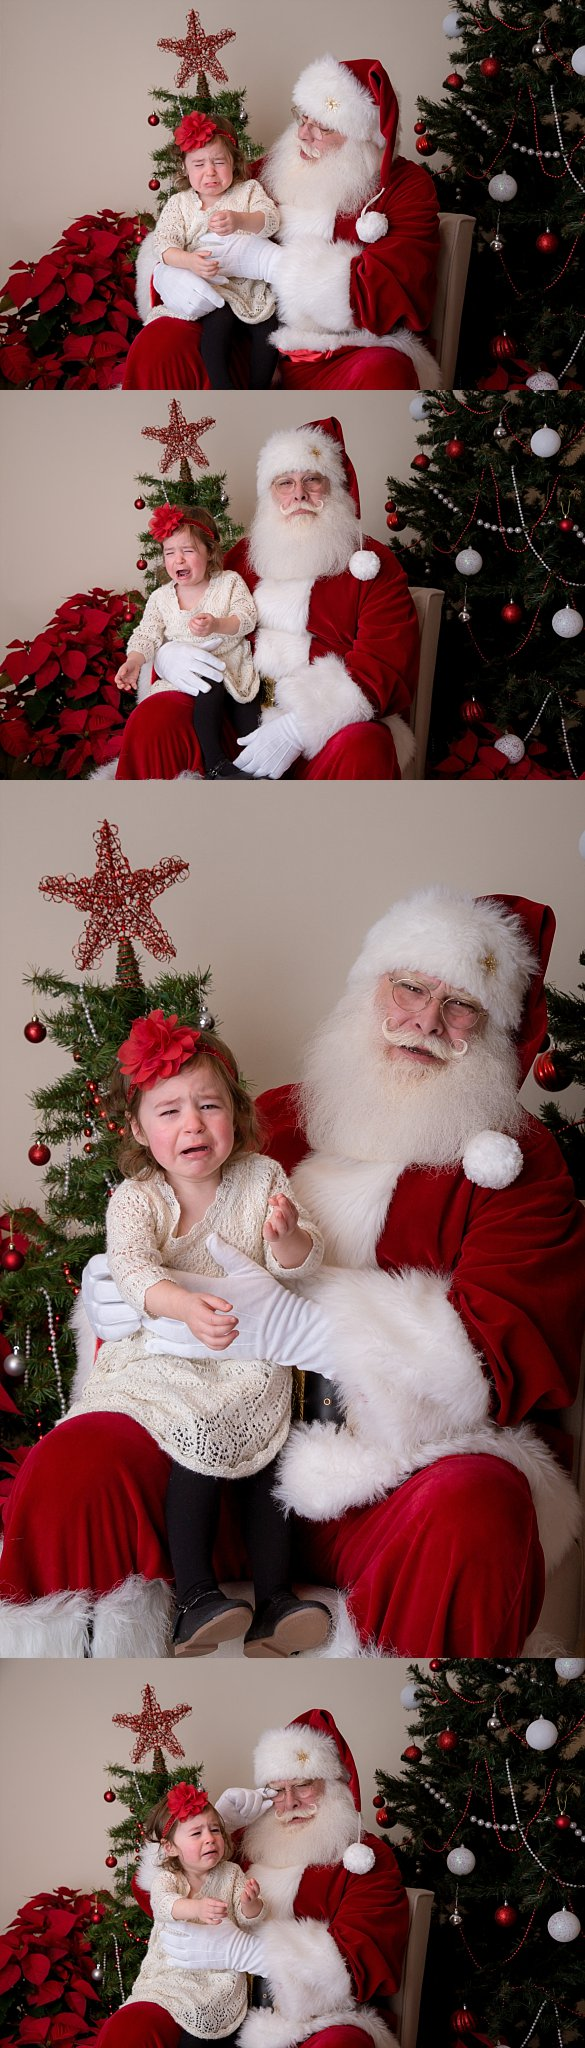 girl crying on santa's lap new jersey photographer